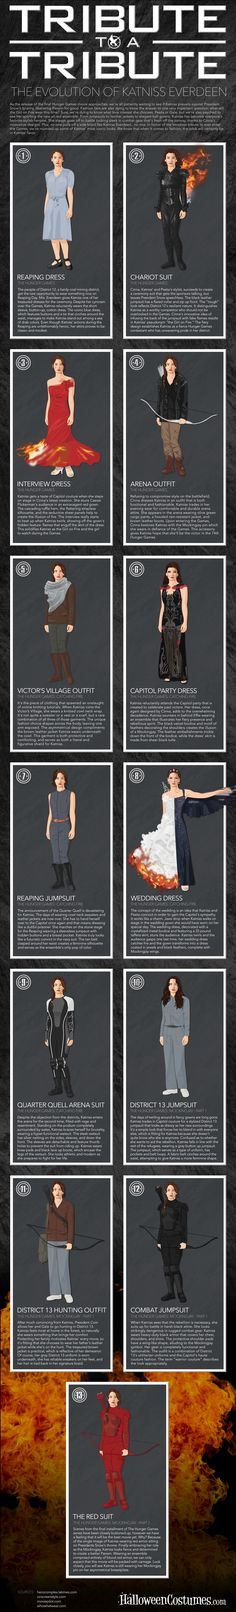 """Tribute to a Tribute: The Evolution of Katniss Everdeen [Infographic] Tribute to a Tribute: The Evolution of Katniss Everdeen [Infographic] Related posts:Watch The Final """"Hunger Games: Mockingjay, Part Trailer Before. Hunger Games Costume, Hunger Games Memes, Hunger Games Fandom, Hunger Games Catching Fire, Hunger Games Trilogy, Katniss Costume, Katniss Everdeen, Katniss And Peeta, Costumes Comic Con"""